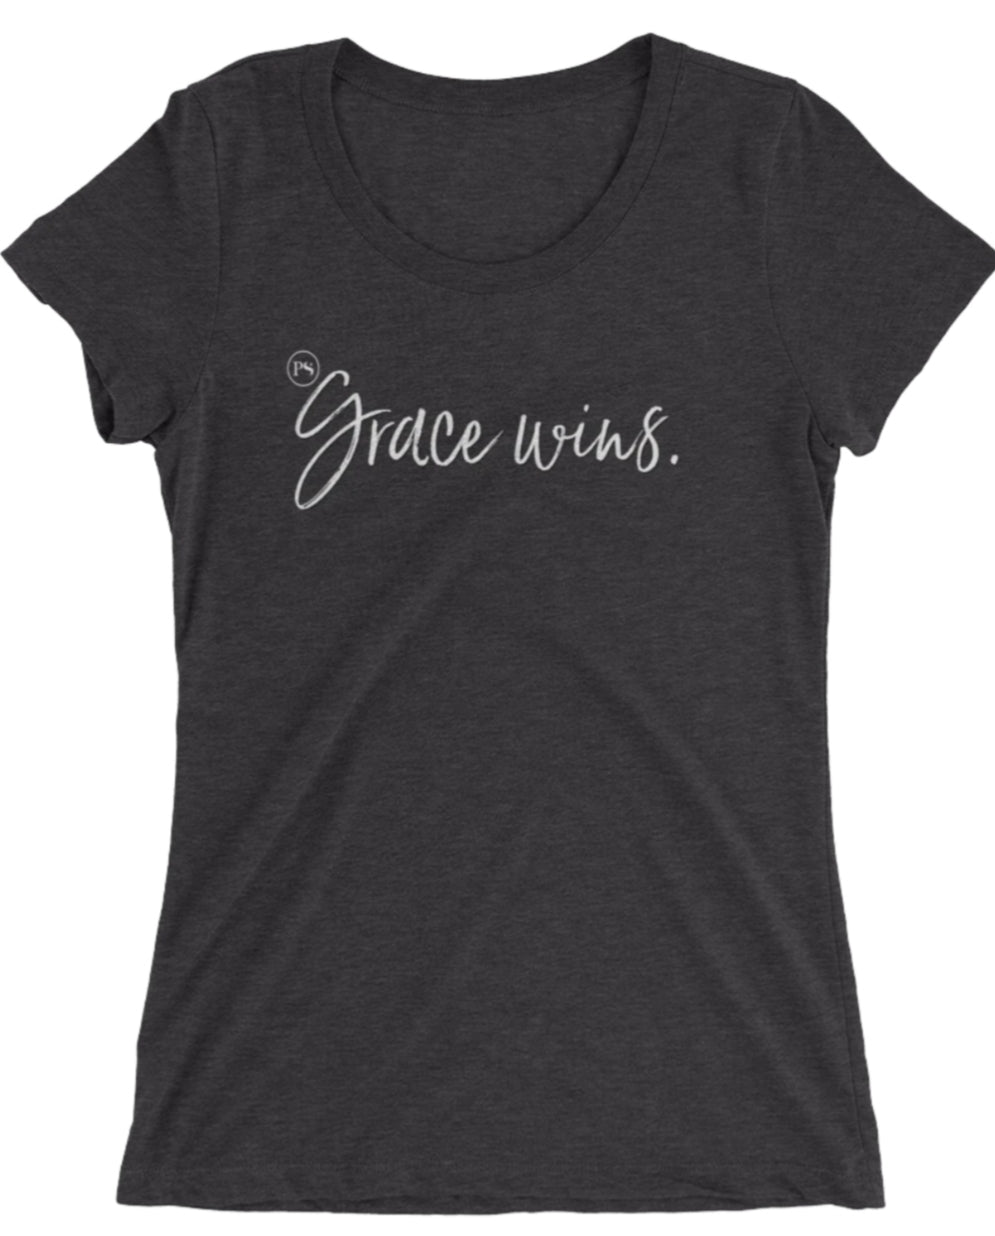 Pretty Simple Grace Wins Graphic Tee